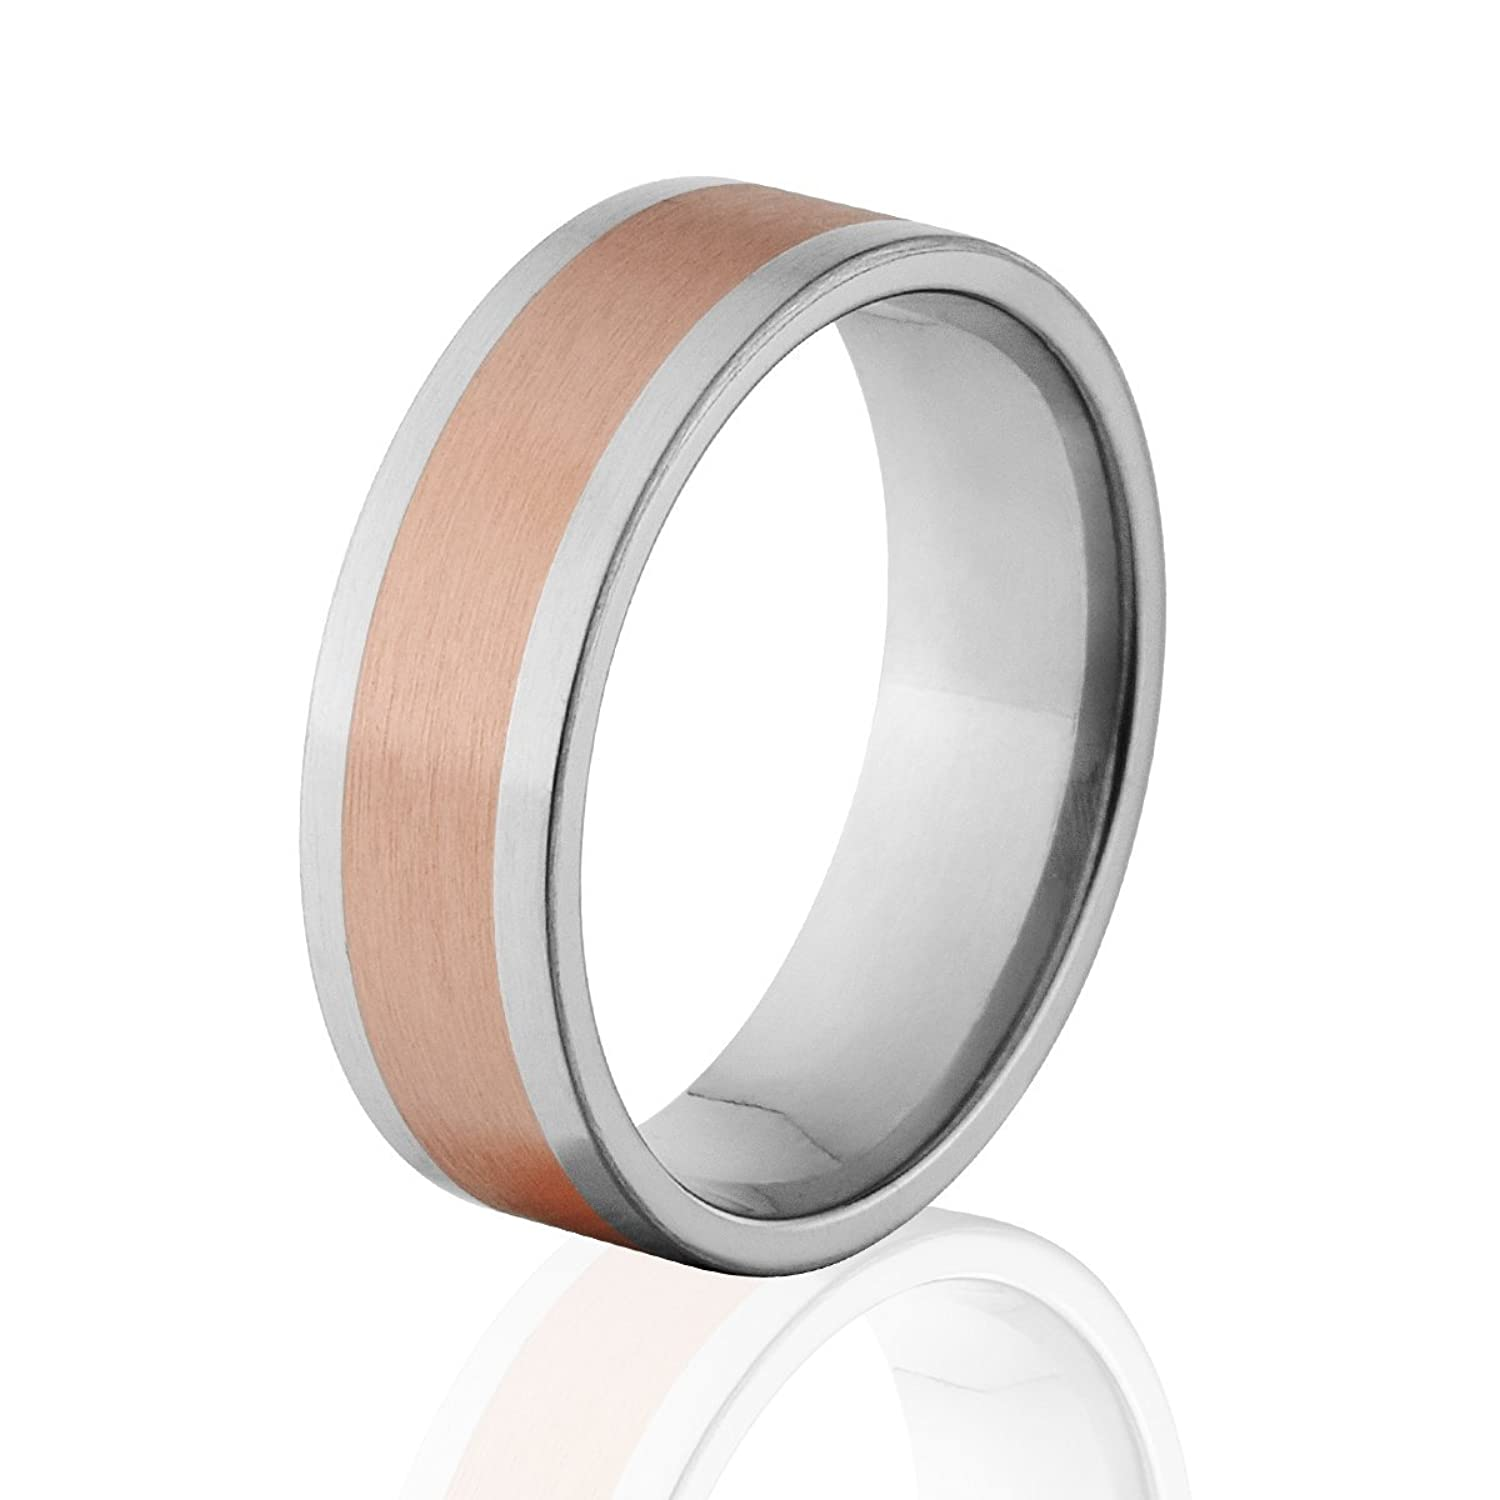 7mm Titanium Wedding Ring With Copper Inlay, Copper Rings, Copper Wedding Band